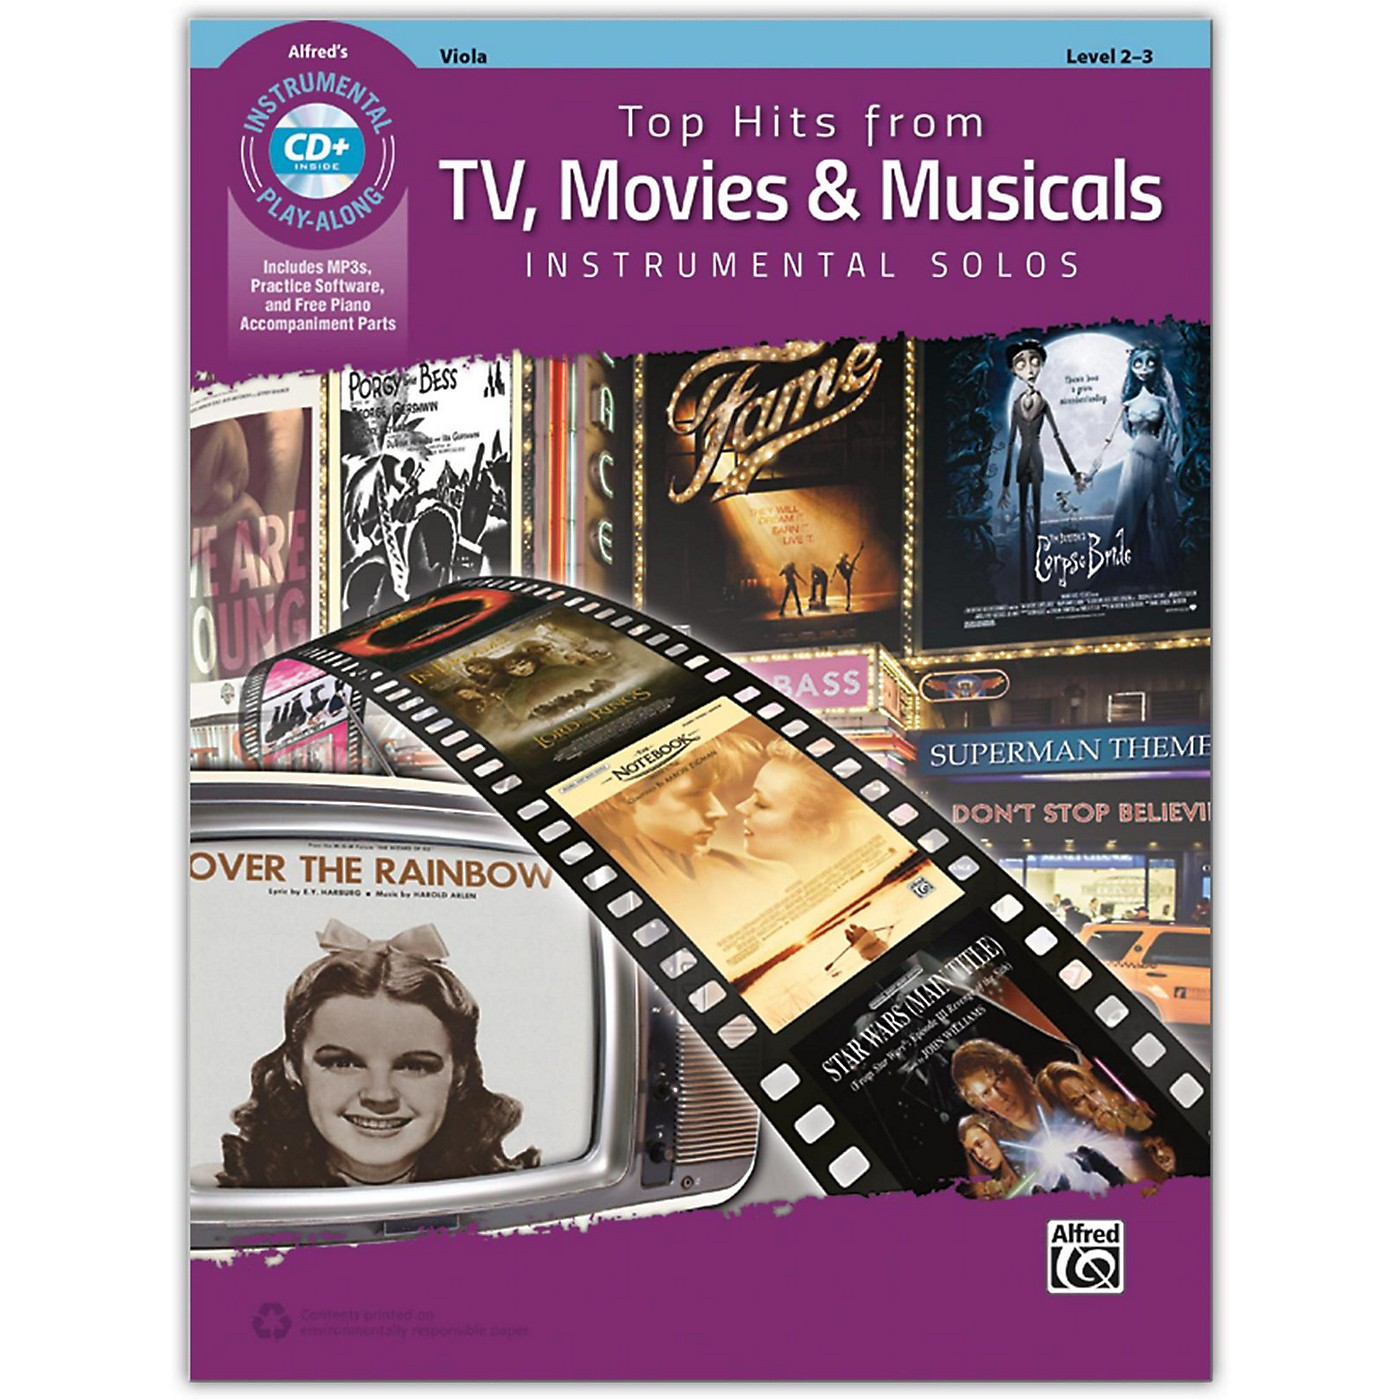 Alfred Top Hits from TV, Movies & Musicals Instrumental Solos for Strings Viola Book & CD, Level 2-3 thumbnail